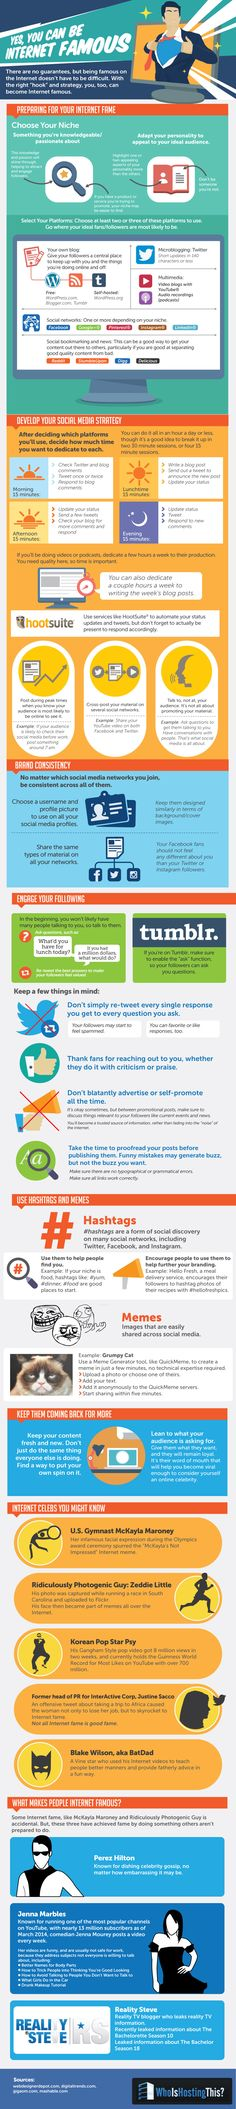 Yes, You Can Be Internet Famous #infographic #Internet #SocialMedia